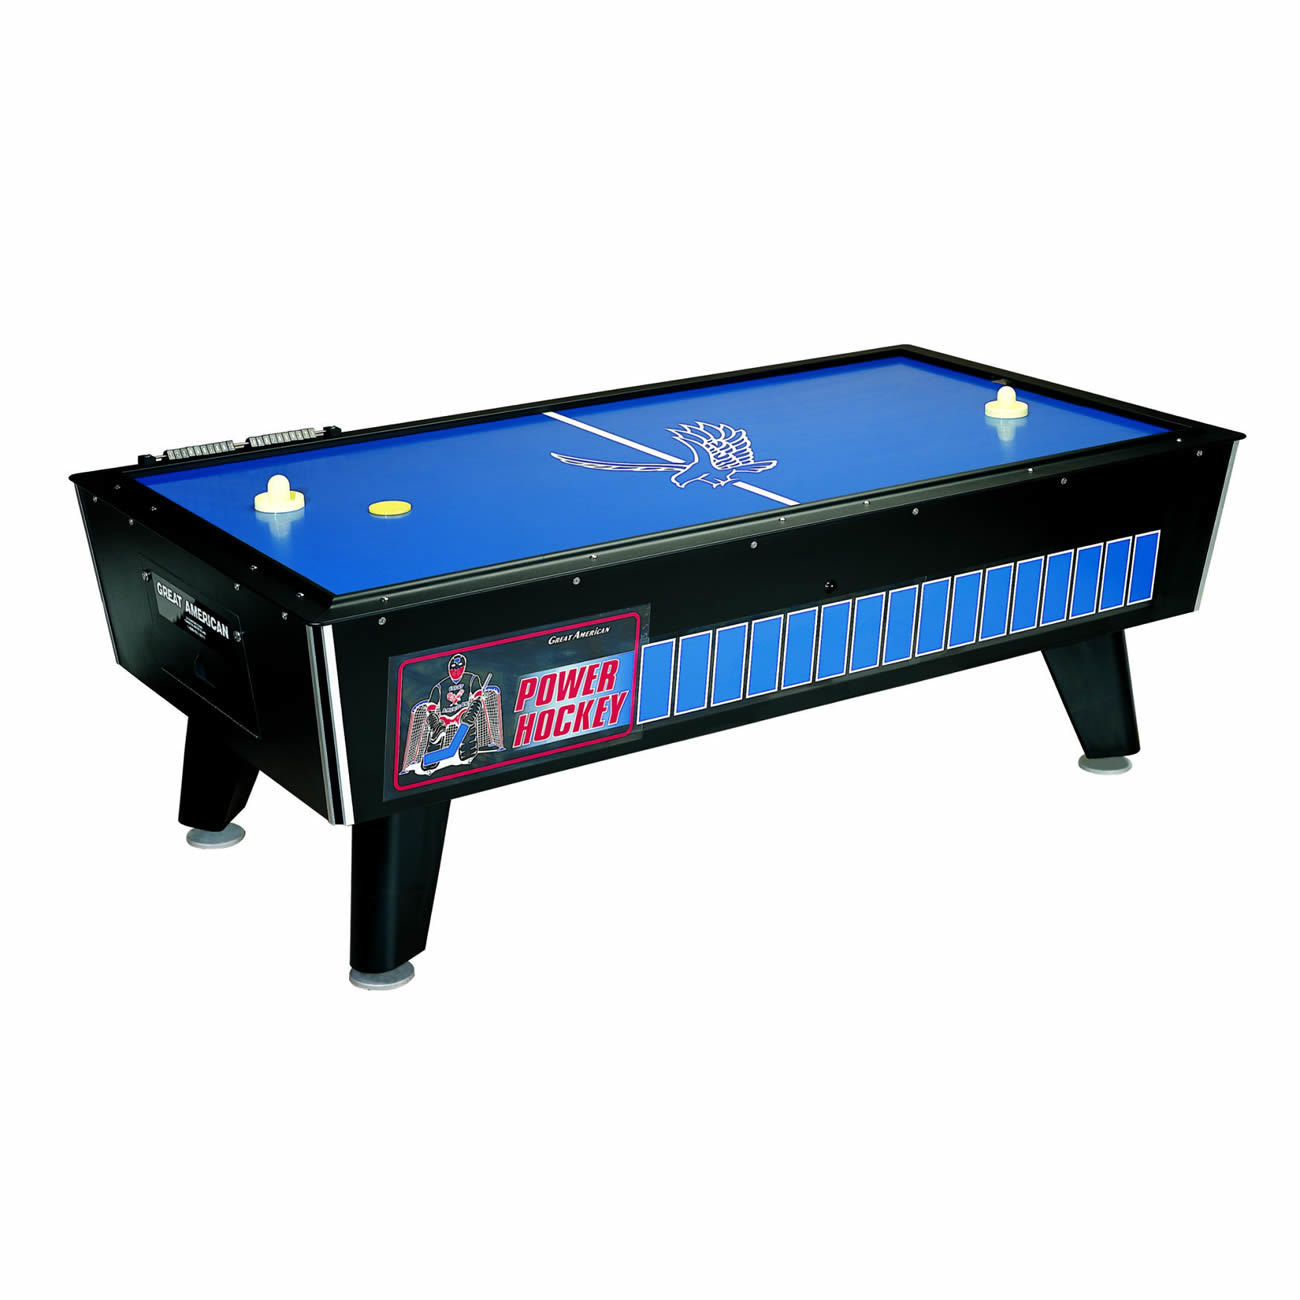 GreatAmericanAirHockey